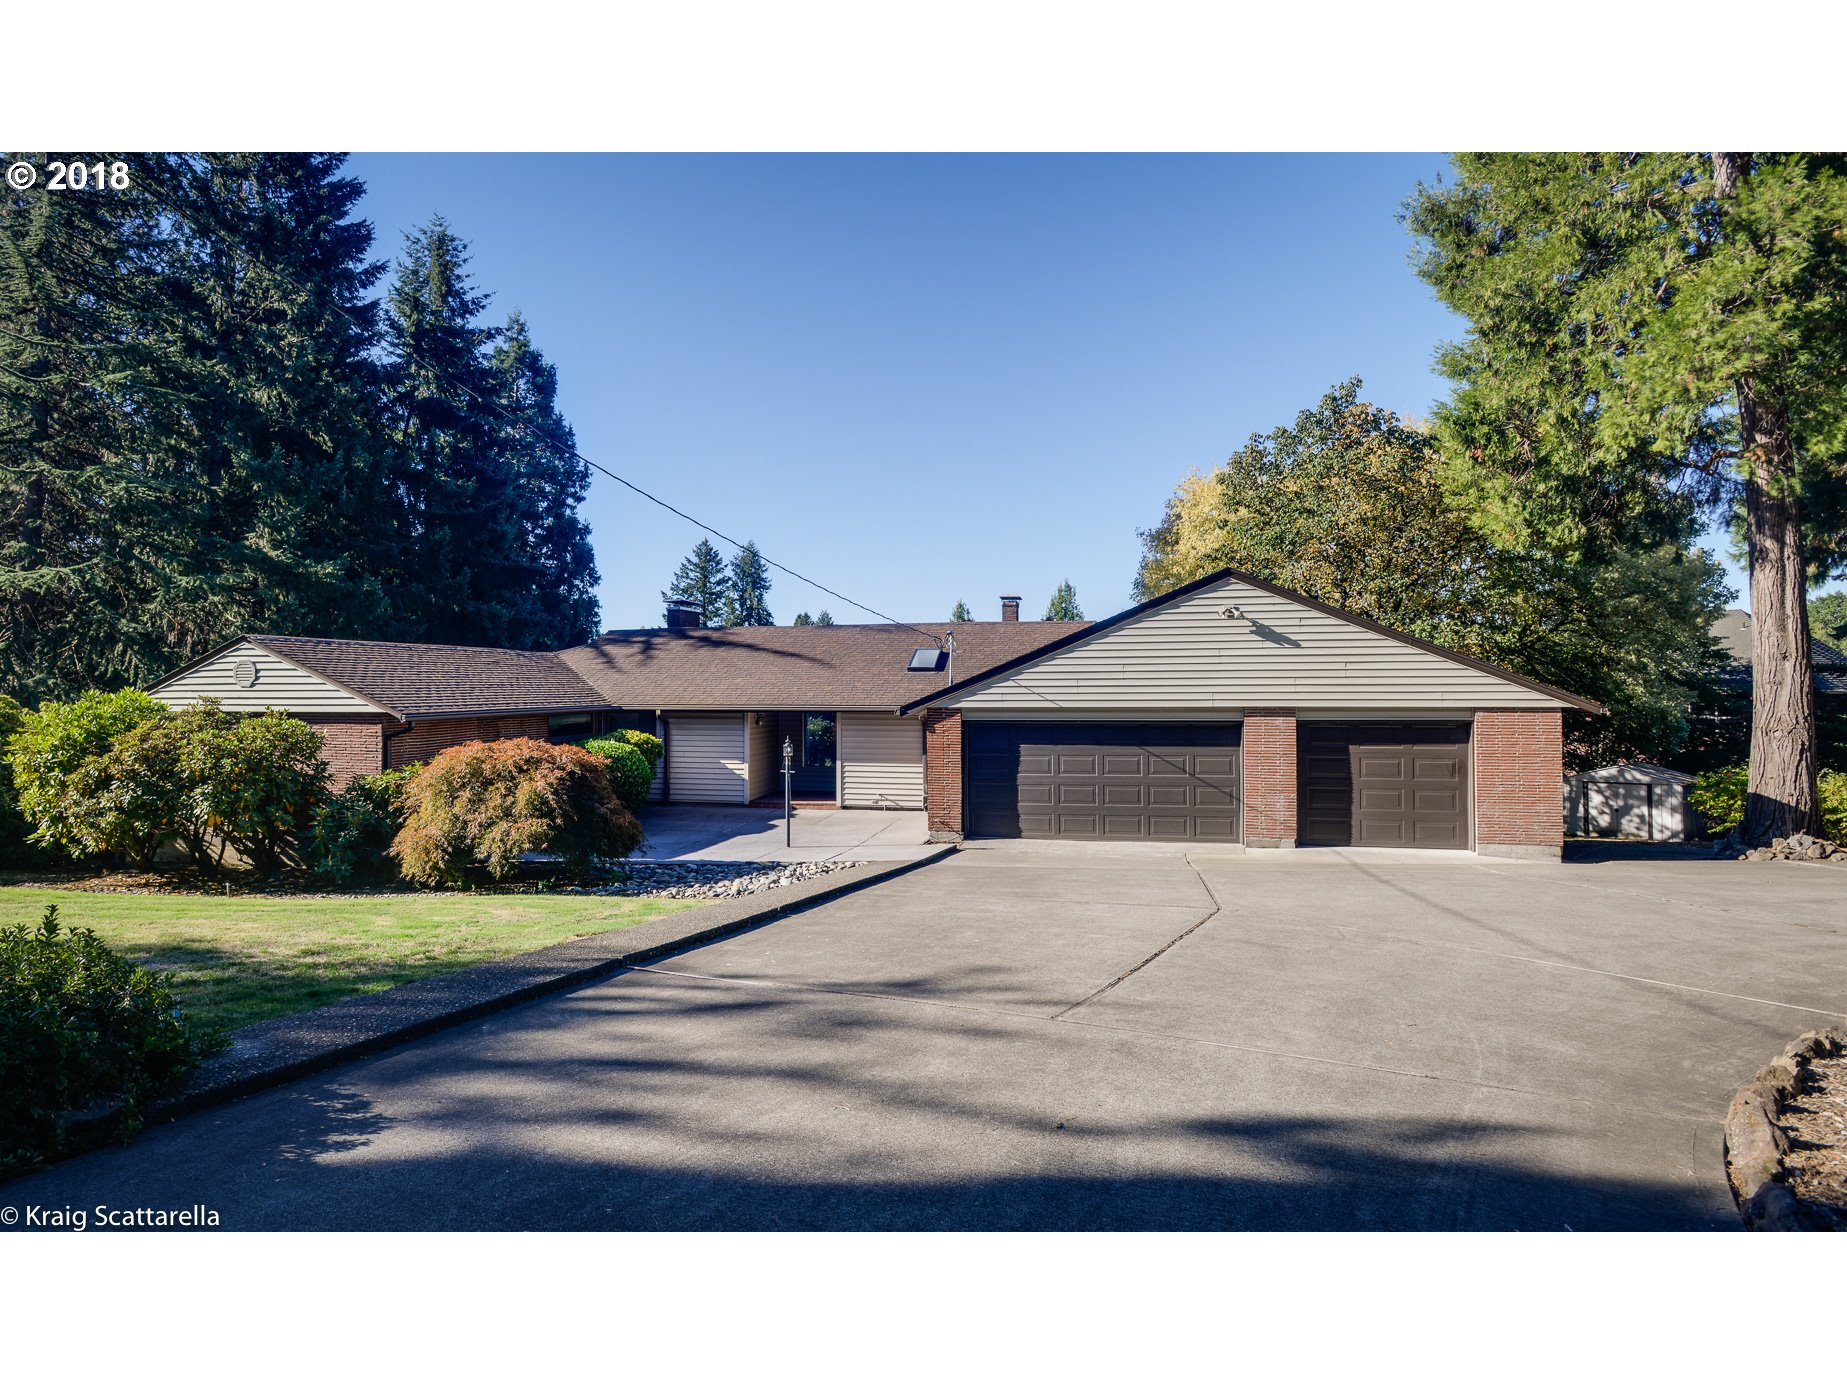 9200 NW LEAHY RD Portland Home Listings - The Rob Levy Team Real Estate